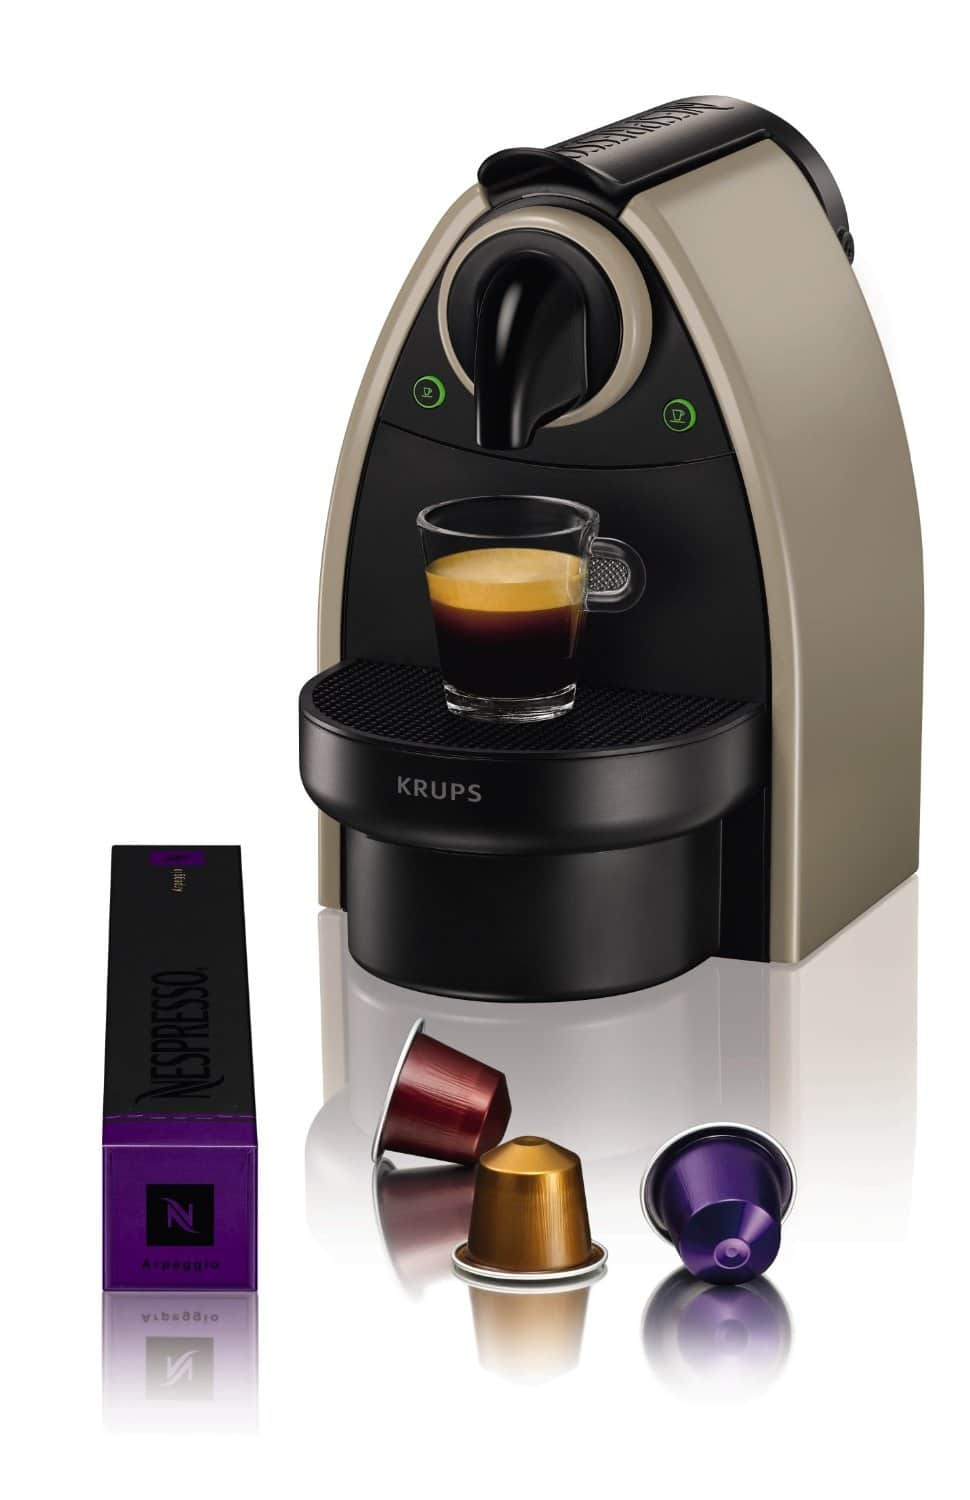 krups essenza cafeti re nespresso machine espresso test et avis. Black Bedroom Furniture Sets. Home Design Ideas